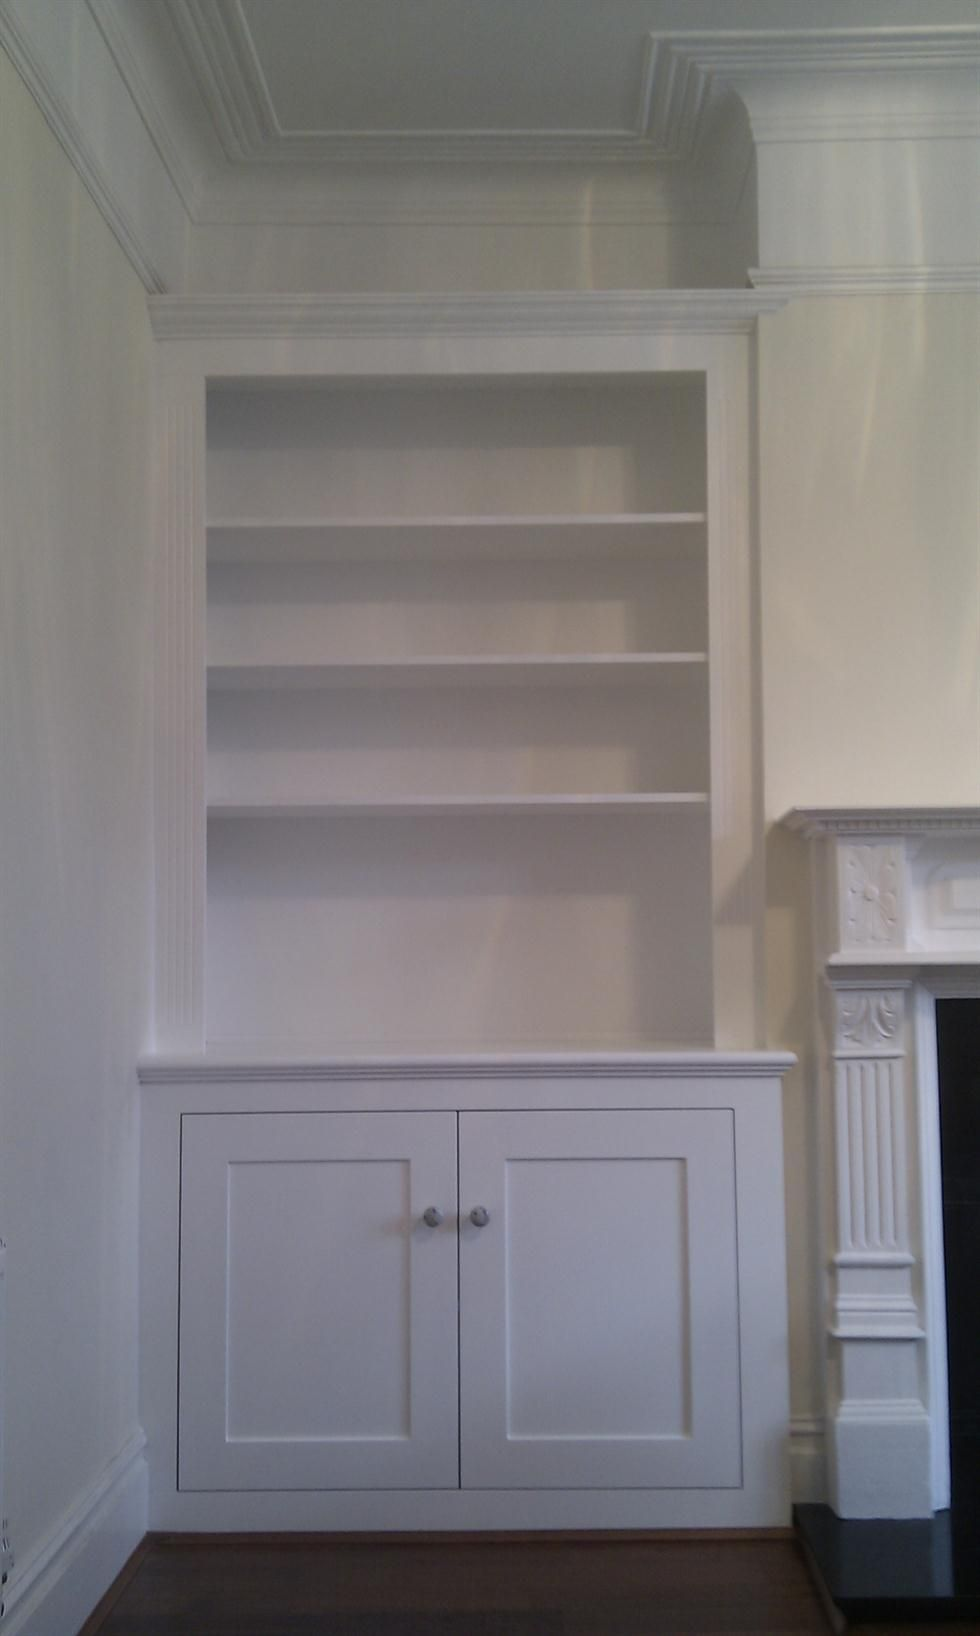 This Alcove Unit Is Styled On A Traditional Dresser With Cornice Fluted Panels And